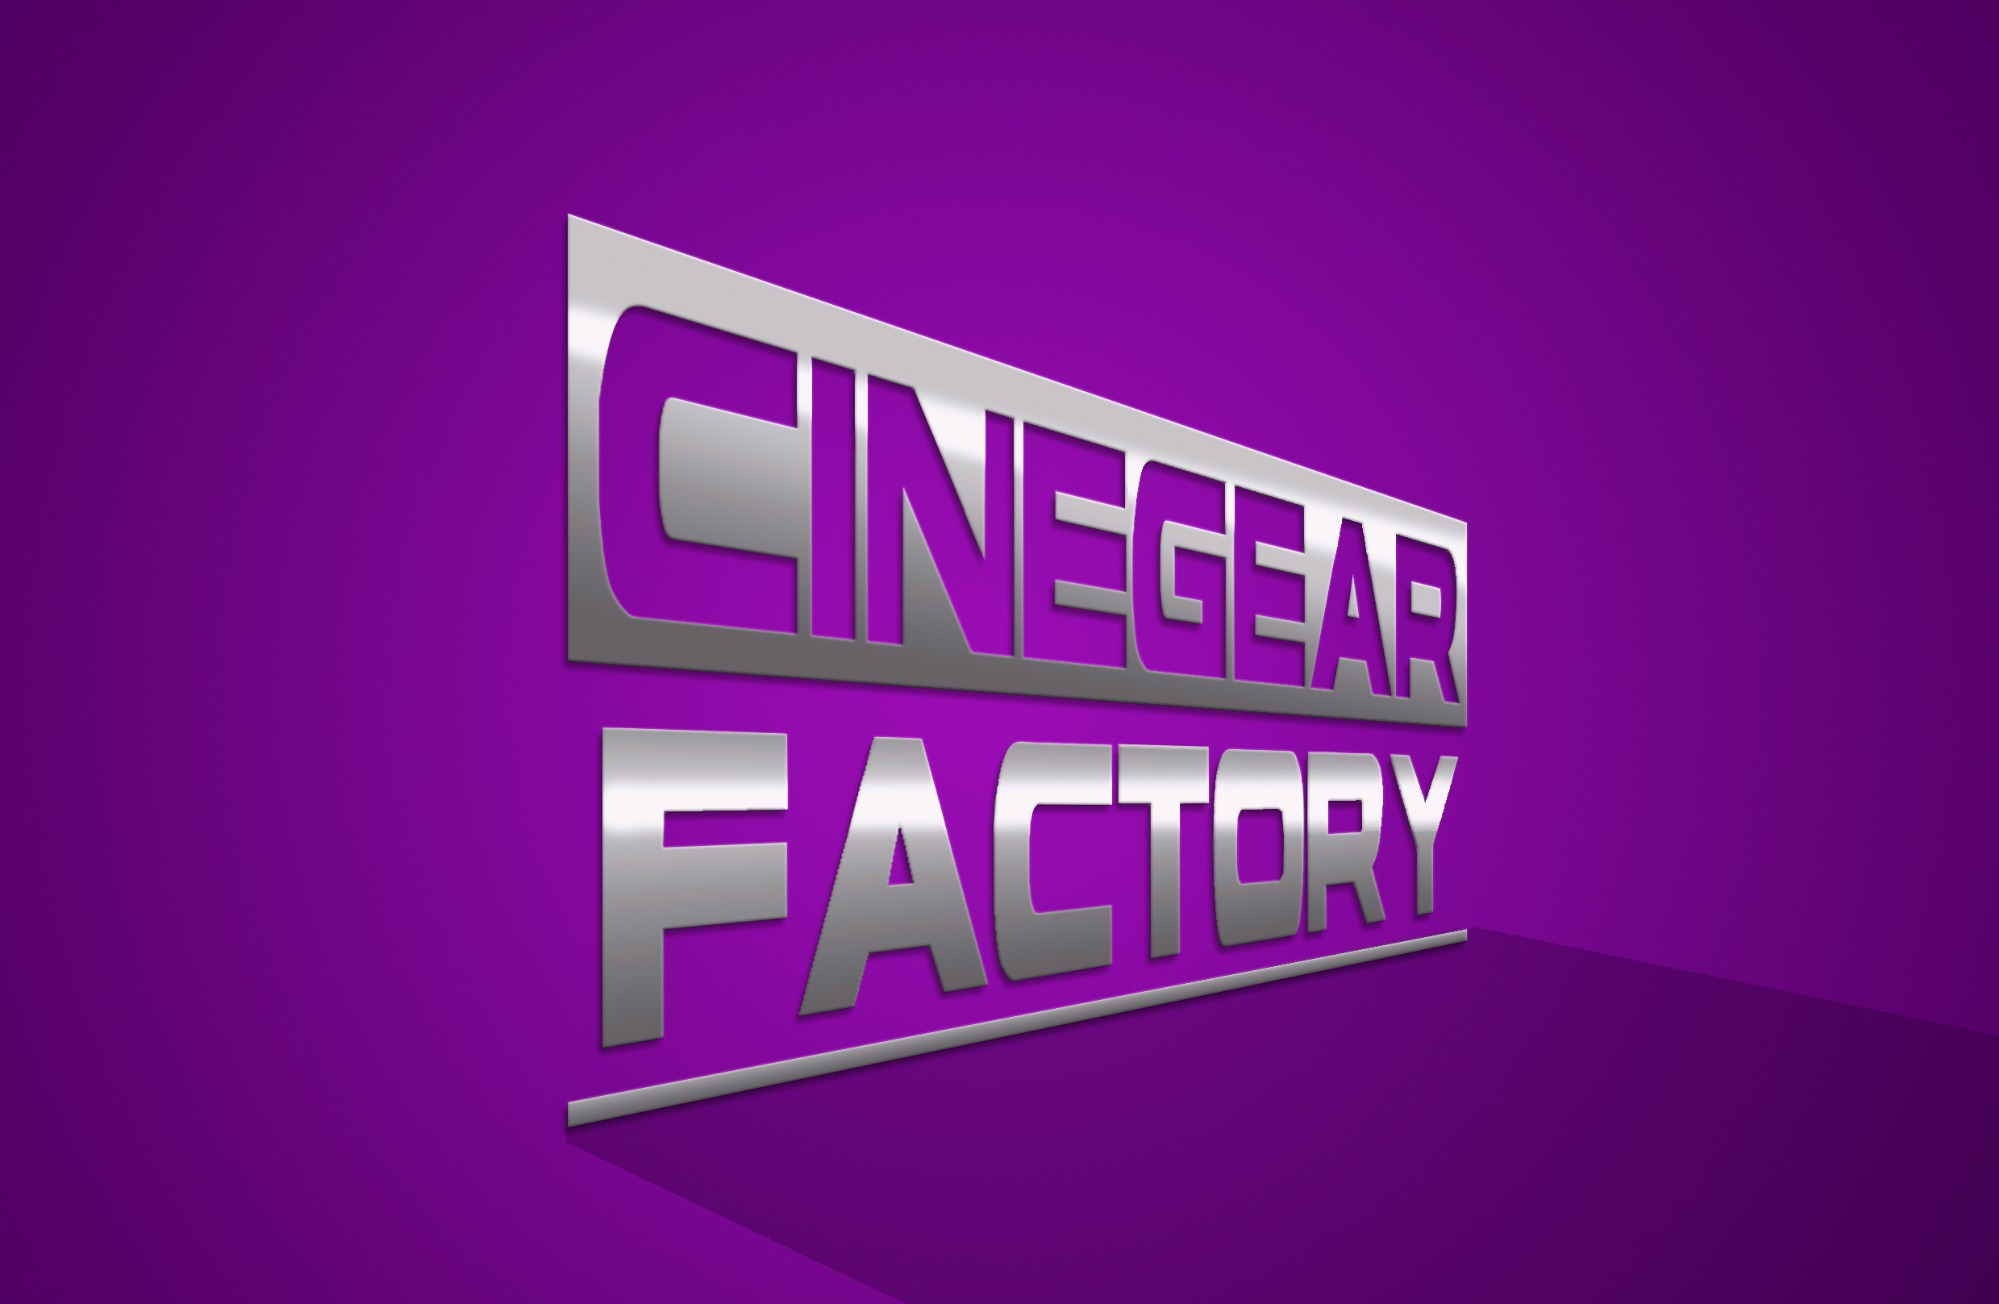 CineGearFactory